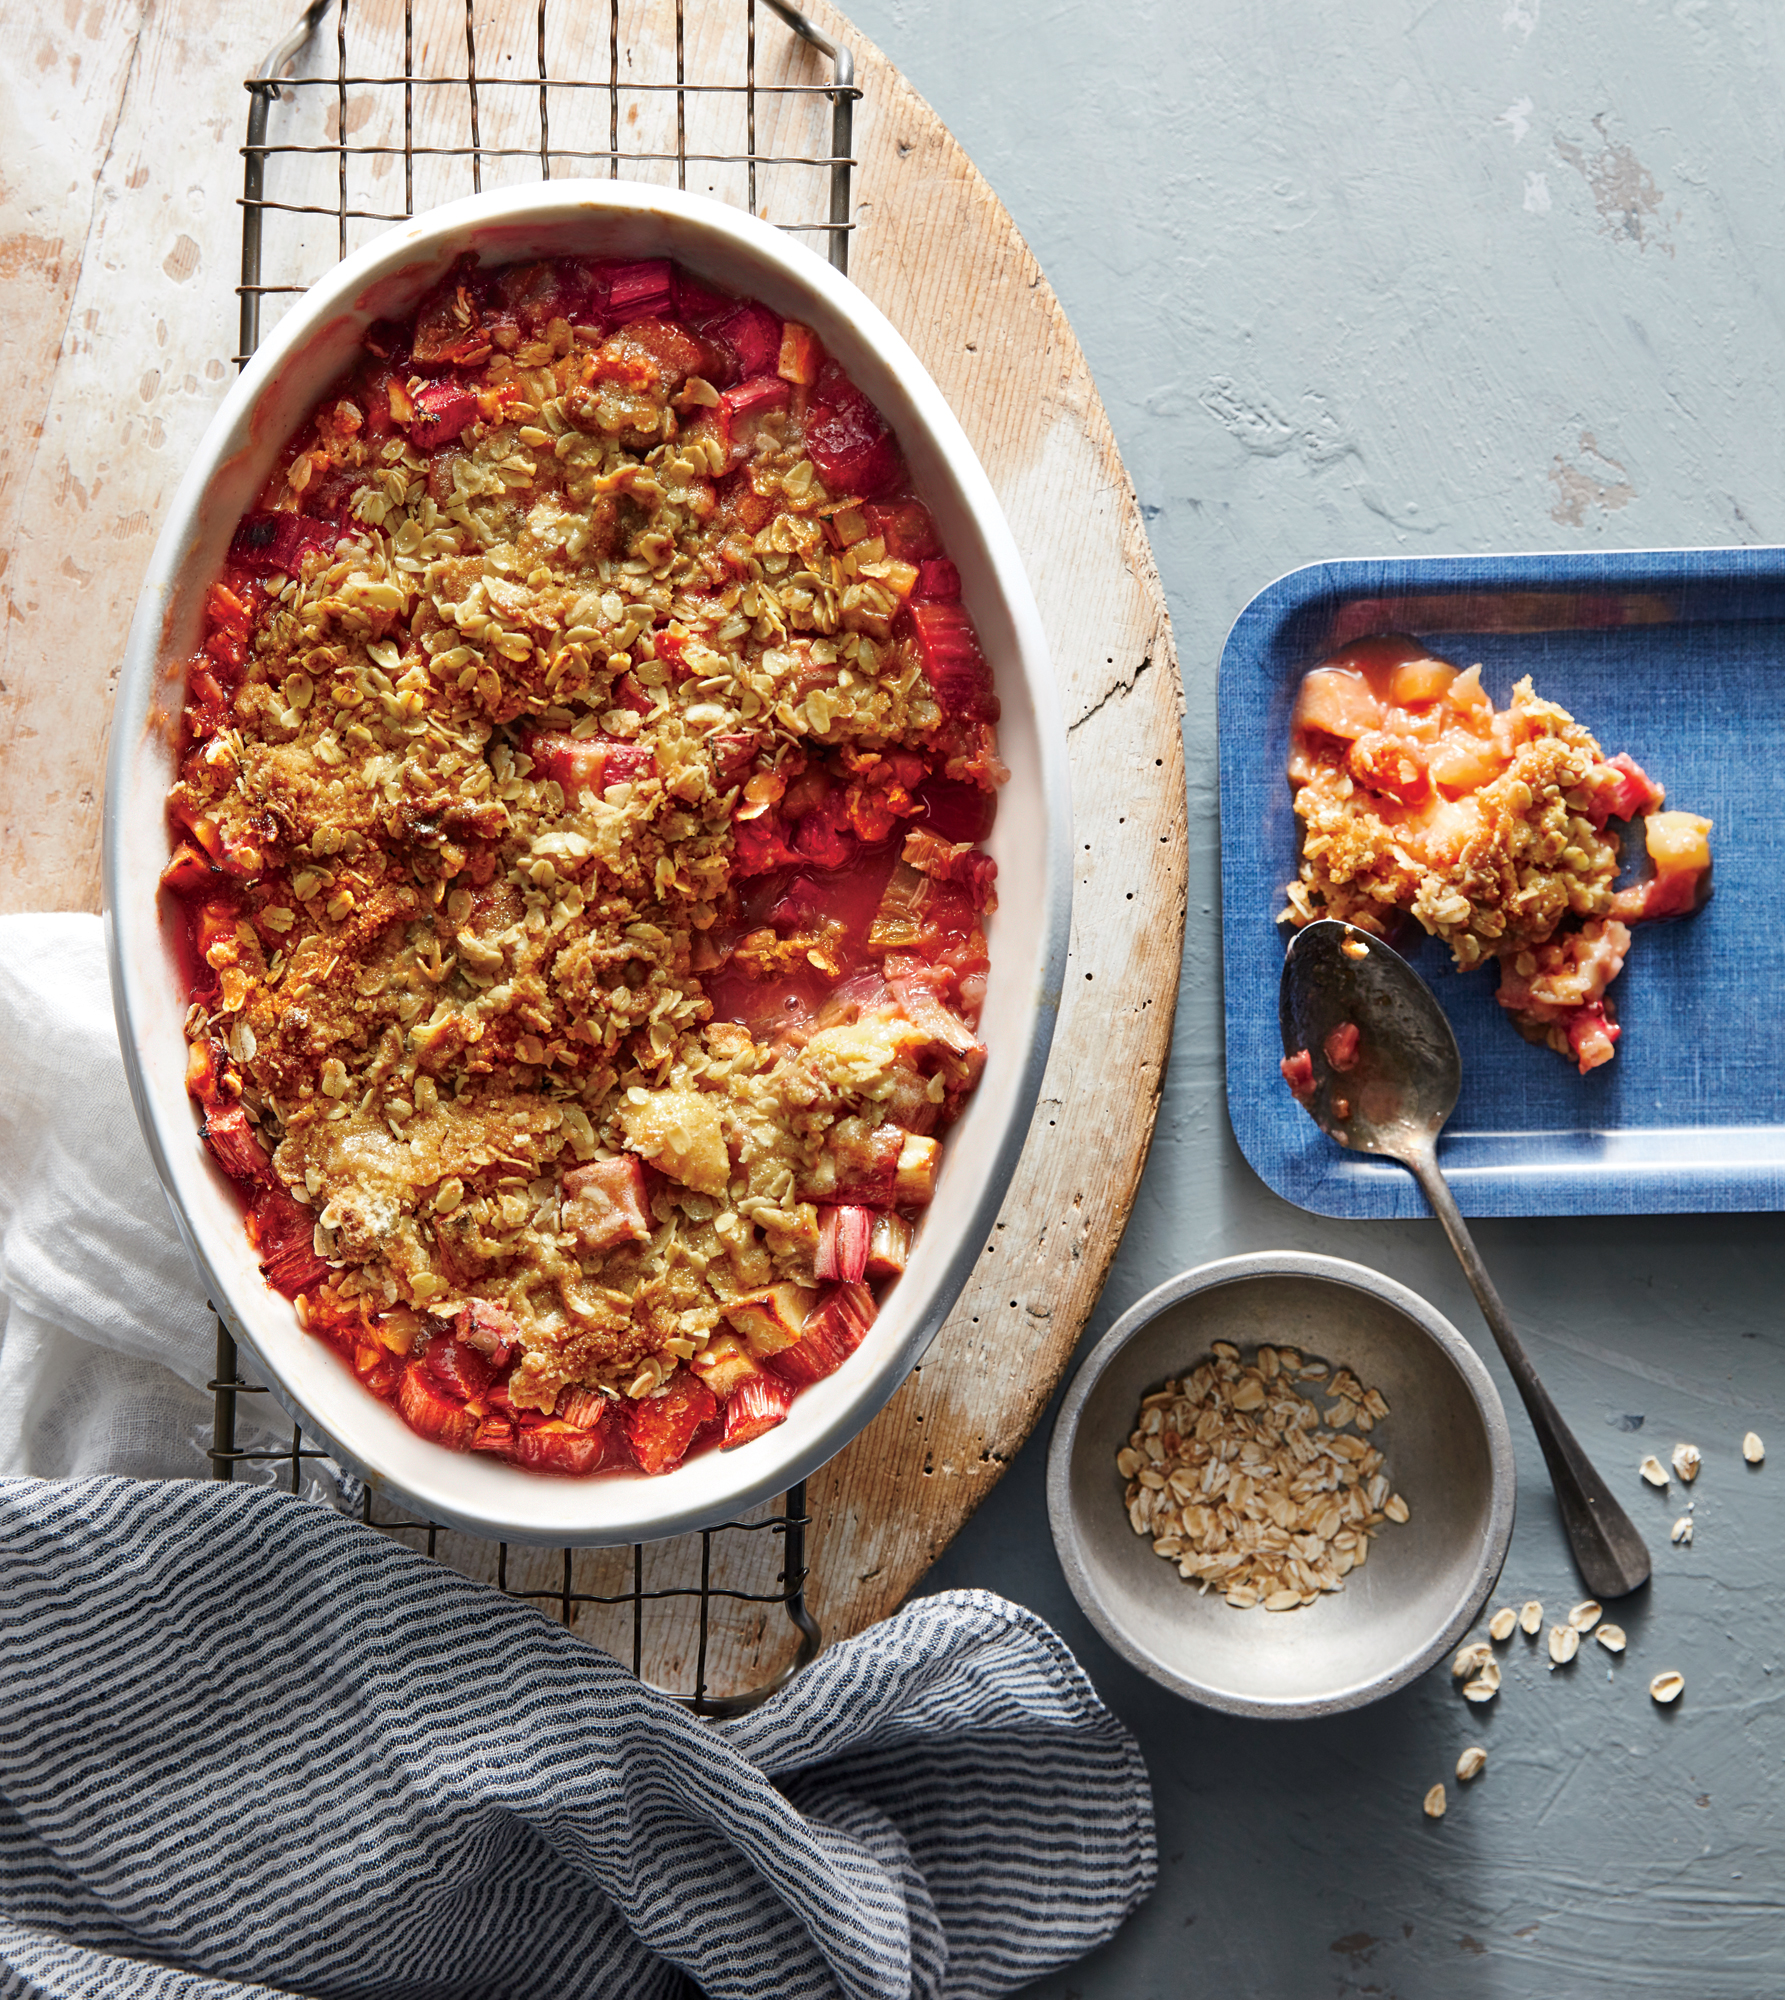 Mom's Rhubarb-Apple Crisp